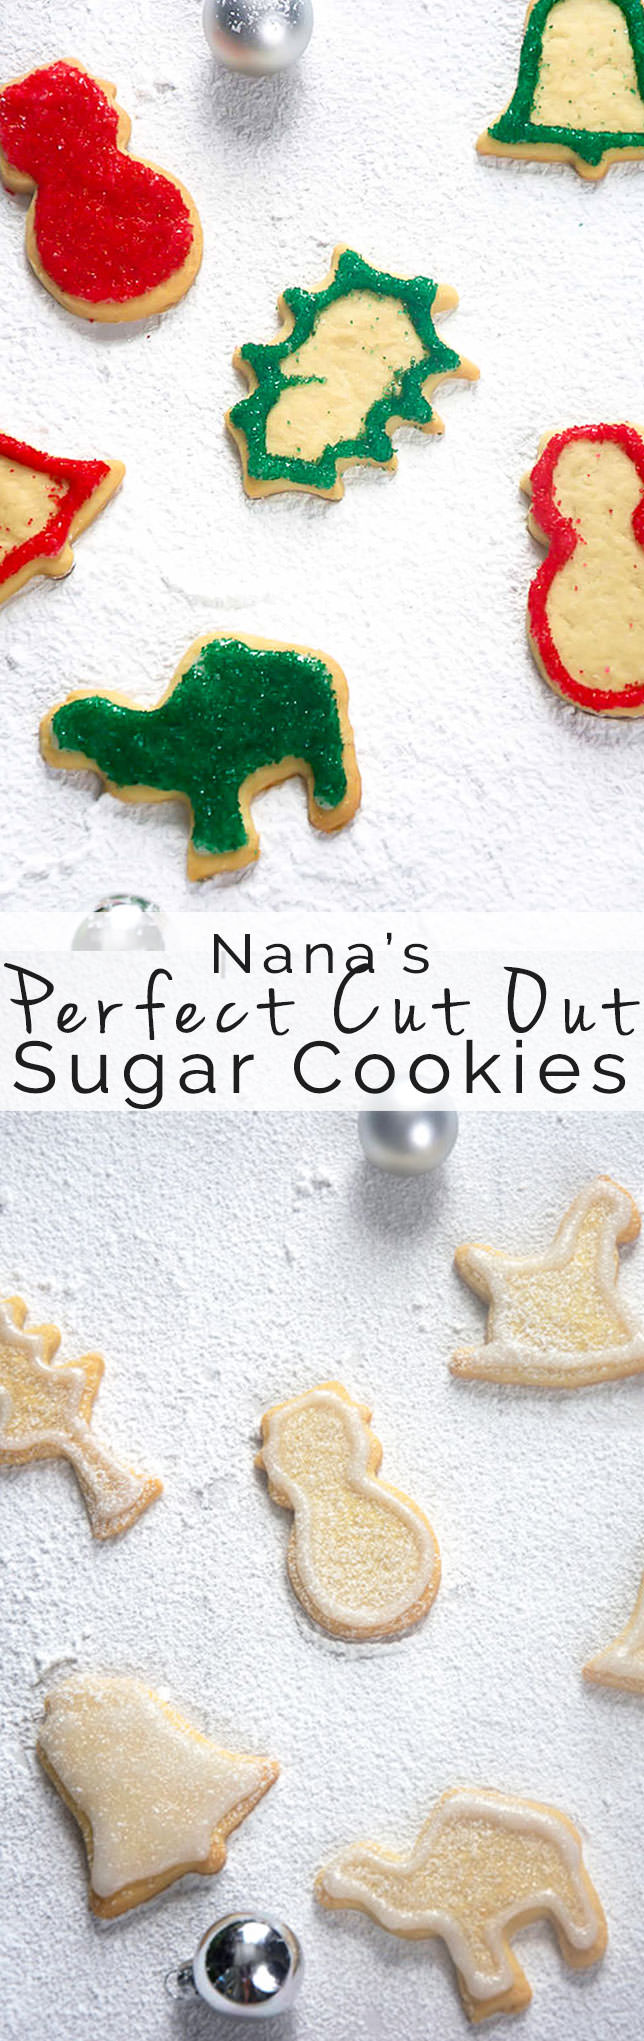 easy cut out sugar cookies recipe, holiday, Christmas, No Chill, Best, Icing, Frosting, decorating, perfect, shape, butter, birthday, how to make, mom,